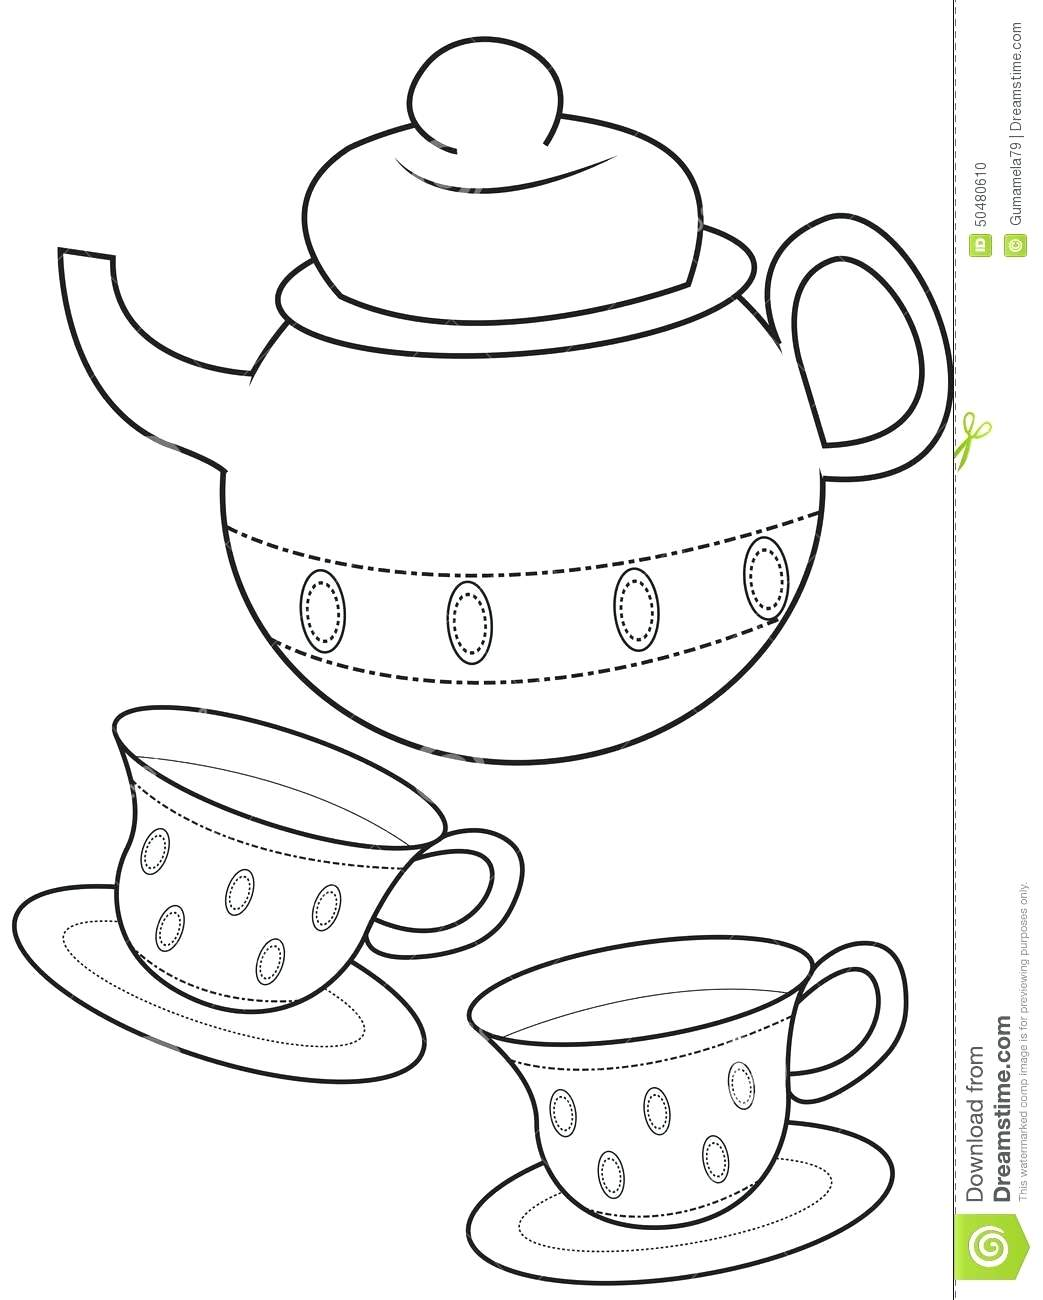 1043x1300 Coffee Cup Coloring Pages Ivector Co In Page